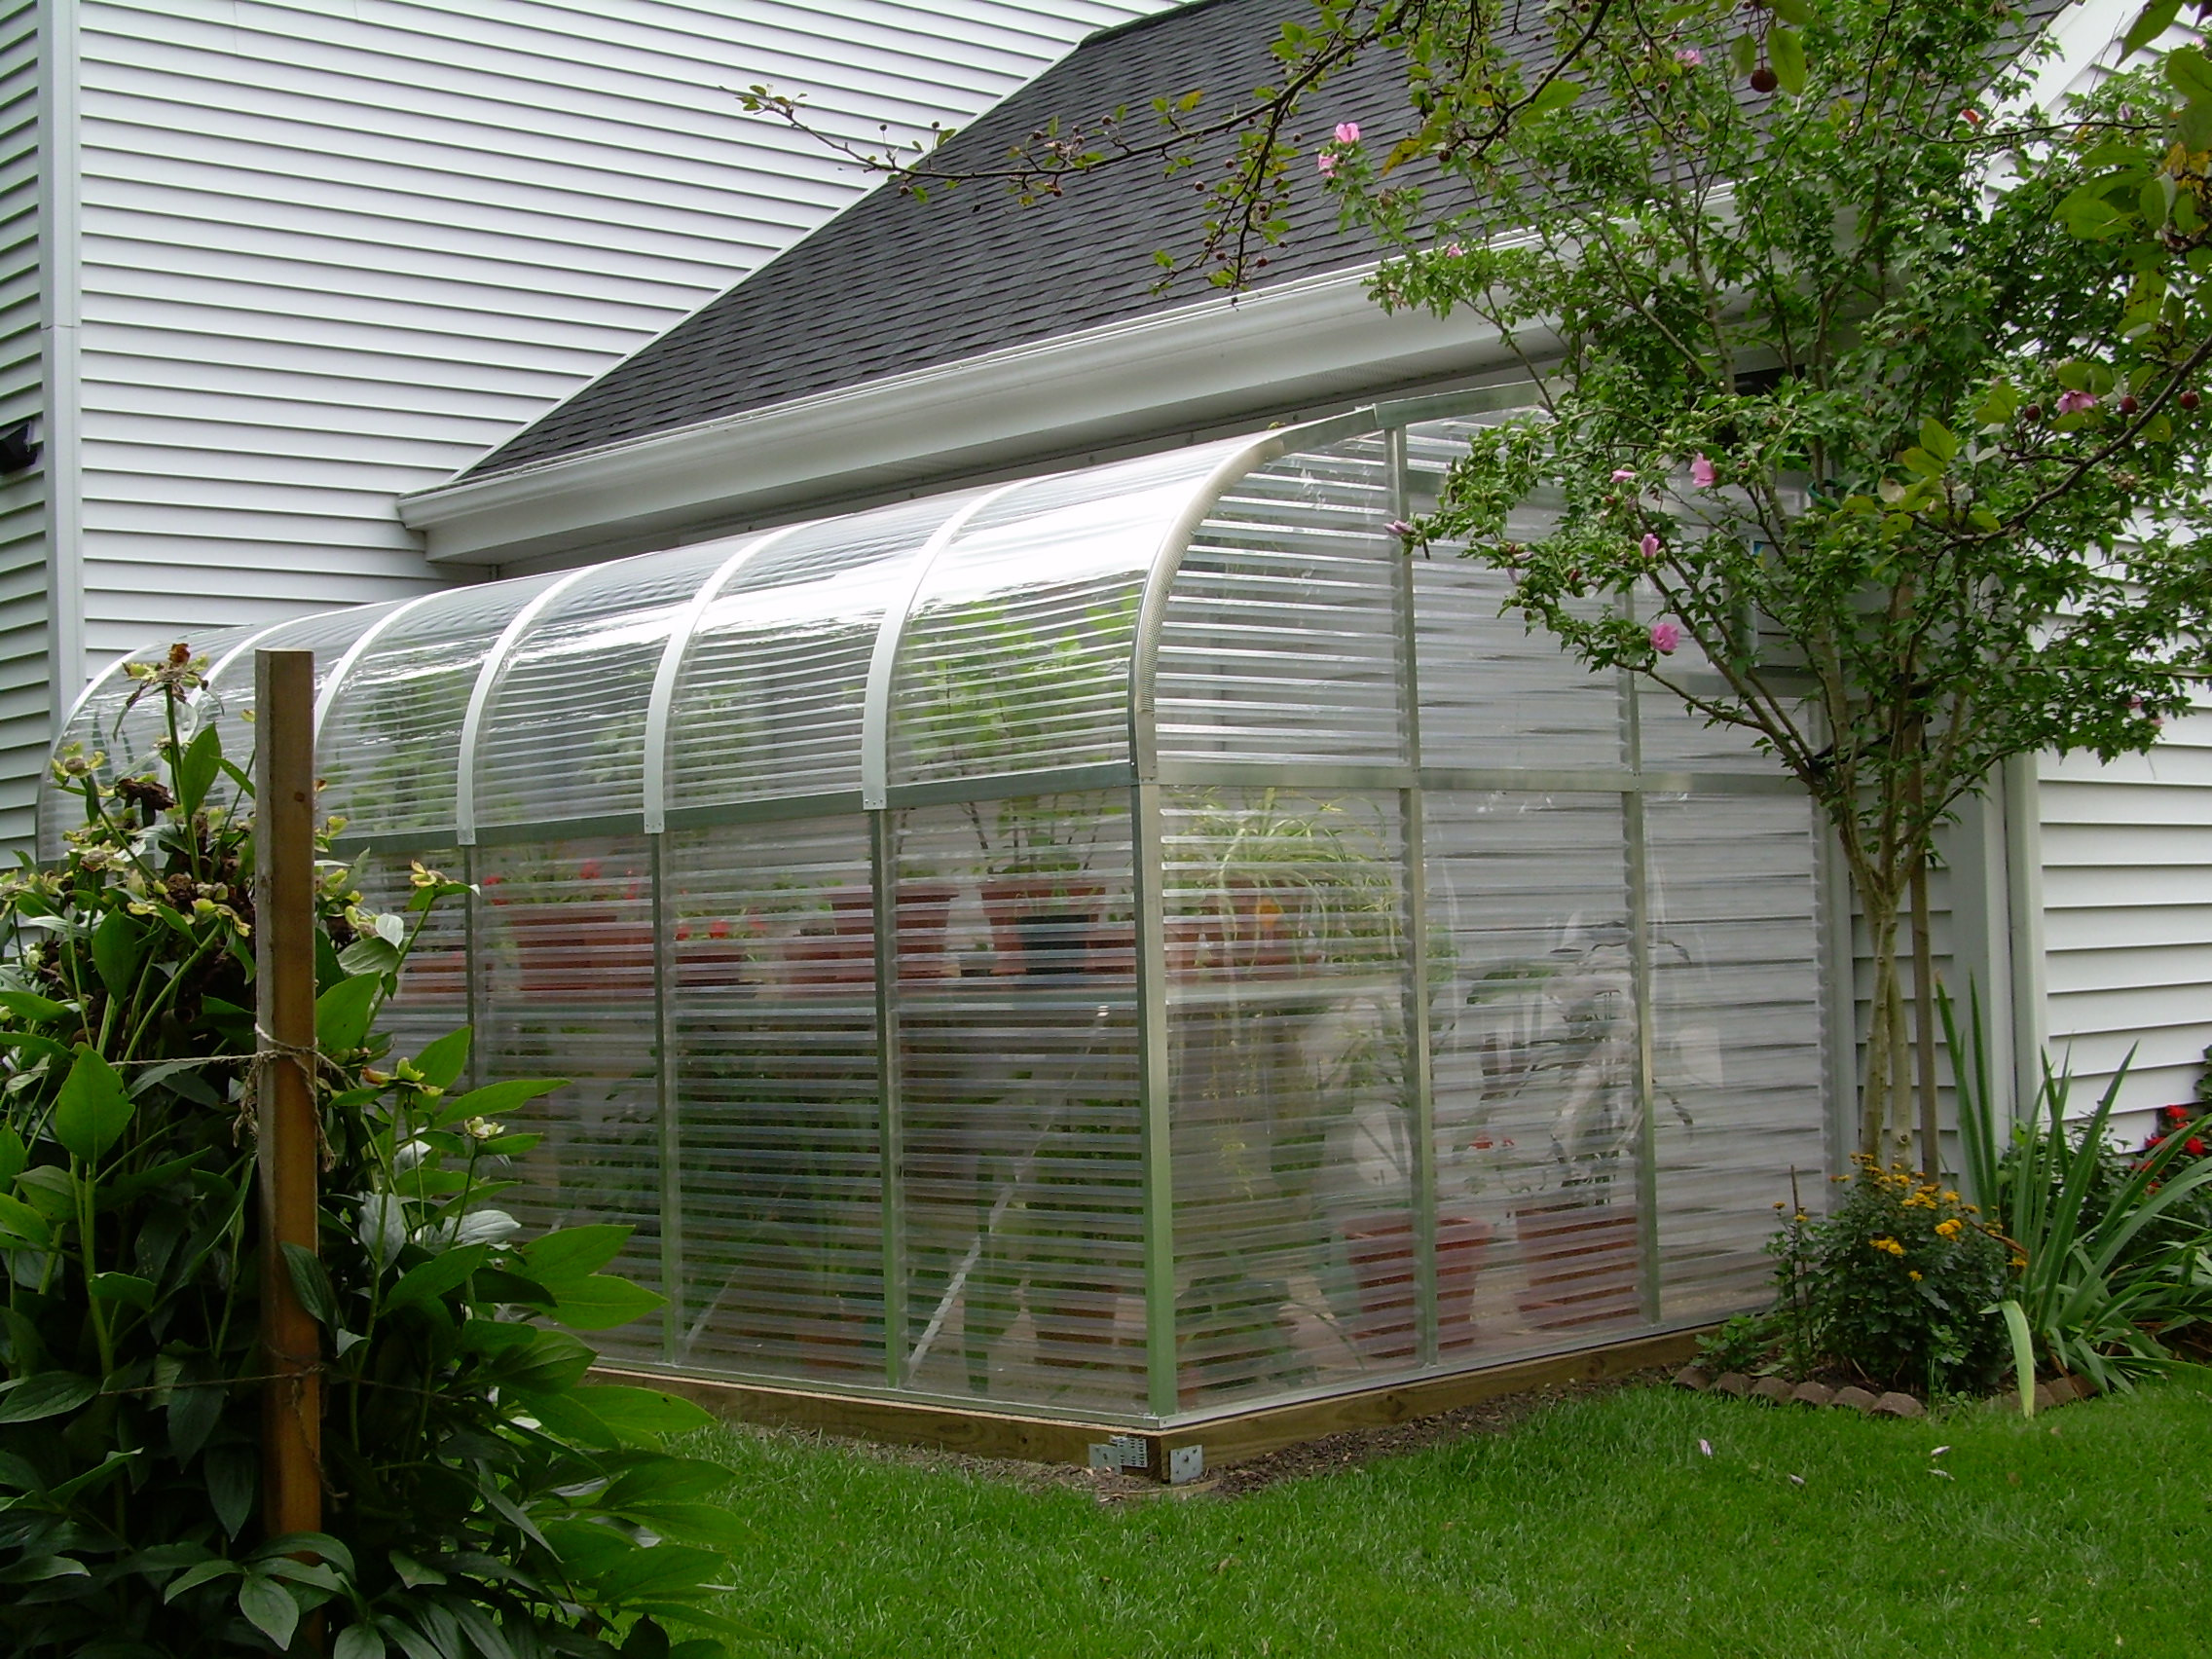 Best ideas about DIY Greenhouse Kits . Save or Pin Sunglo s Lean to DIY Greenhouse Kits The Greenhouse Gardener Now.